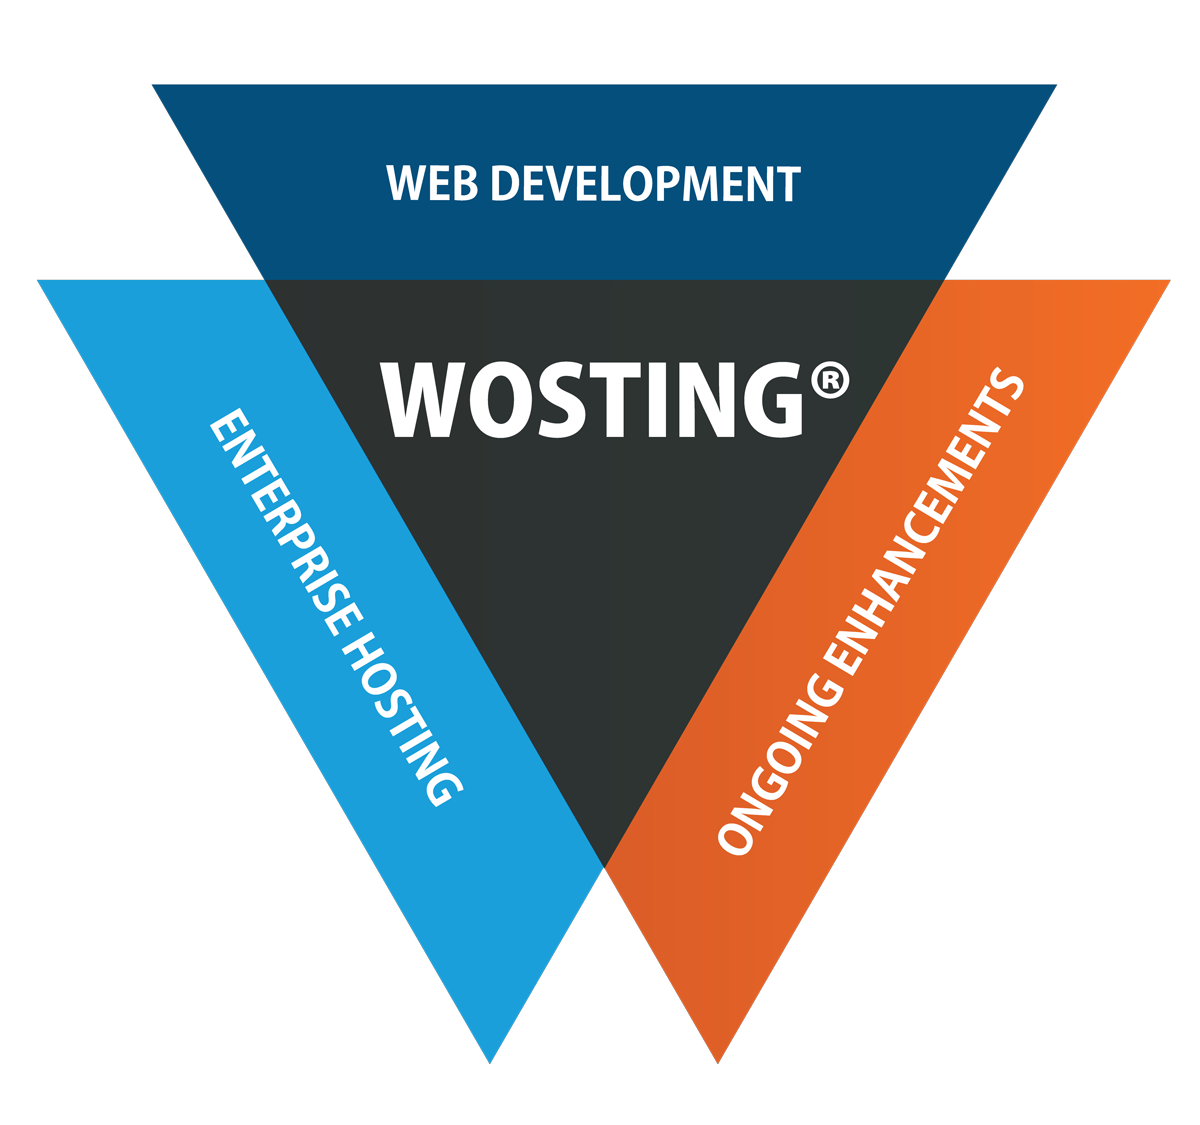 Wosting with web and hosting services combined.